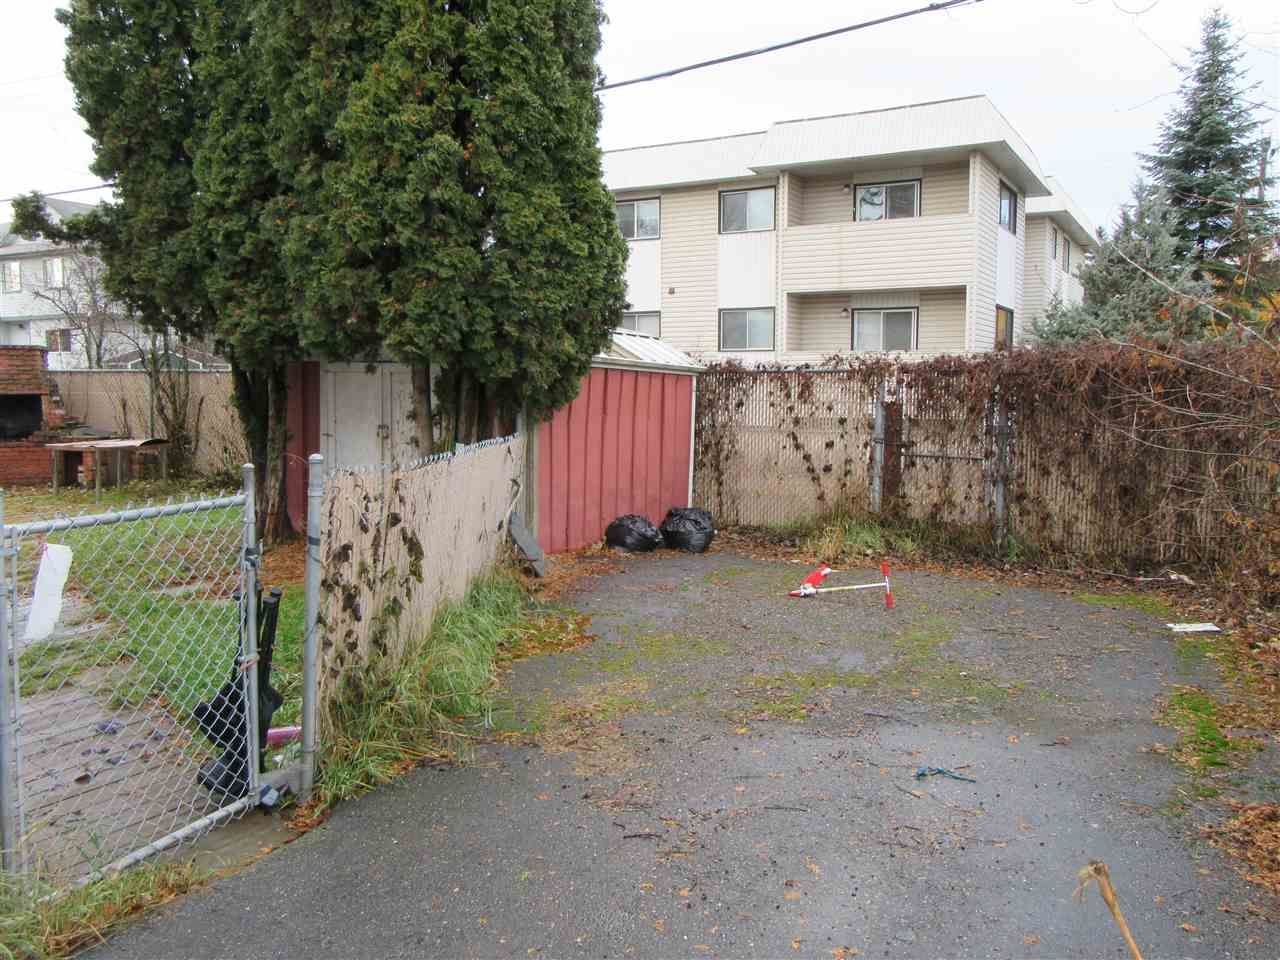 Photo 3: Photos: 1737 REDWOOD Street in Prince George: Van Bow House for sale (PG City Central (Zone 72))  : MLS®# R2417839